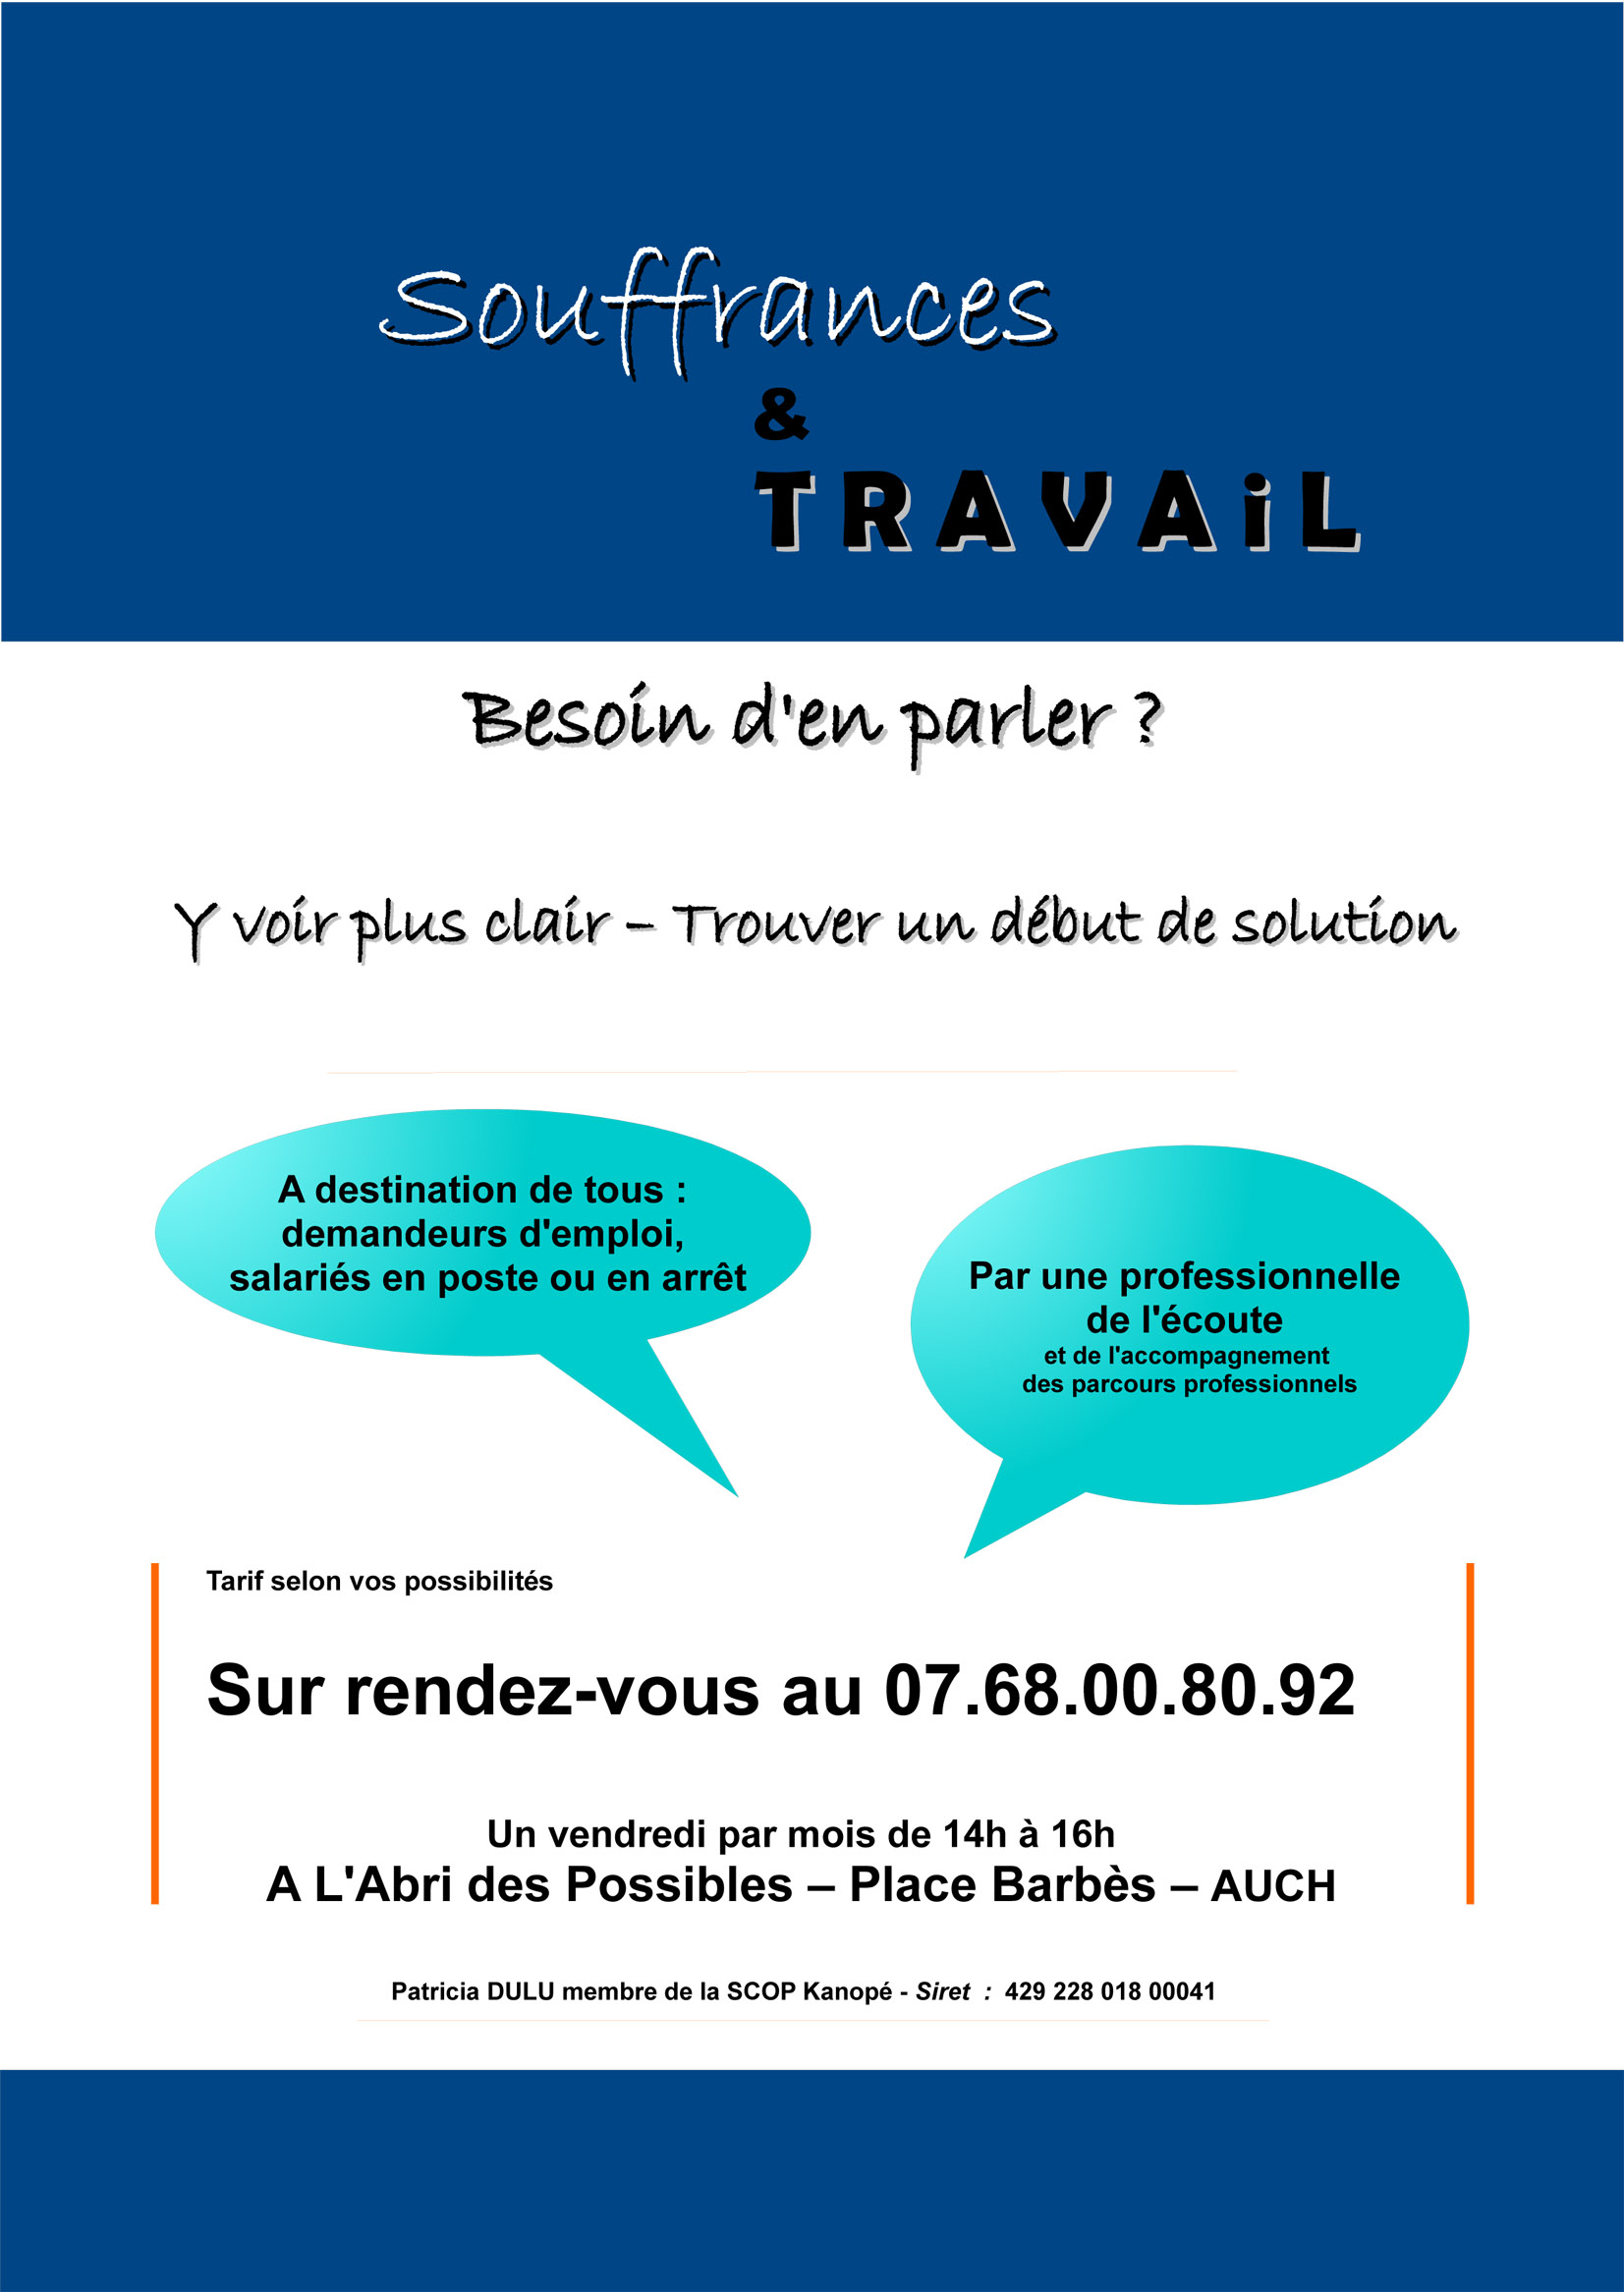 at-souffrance-travail